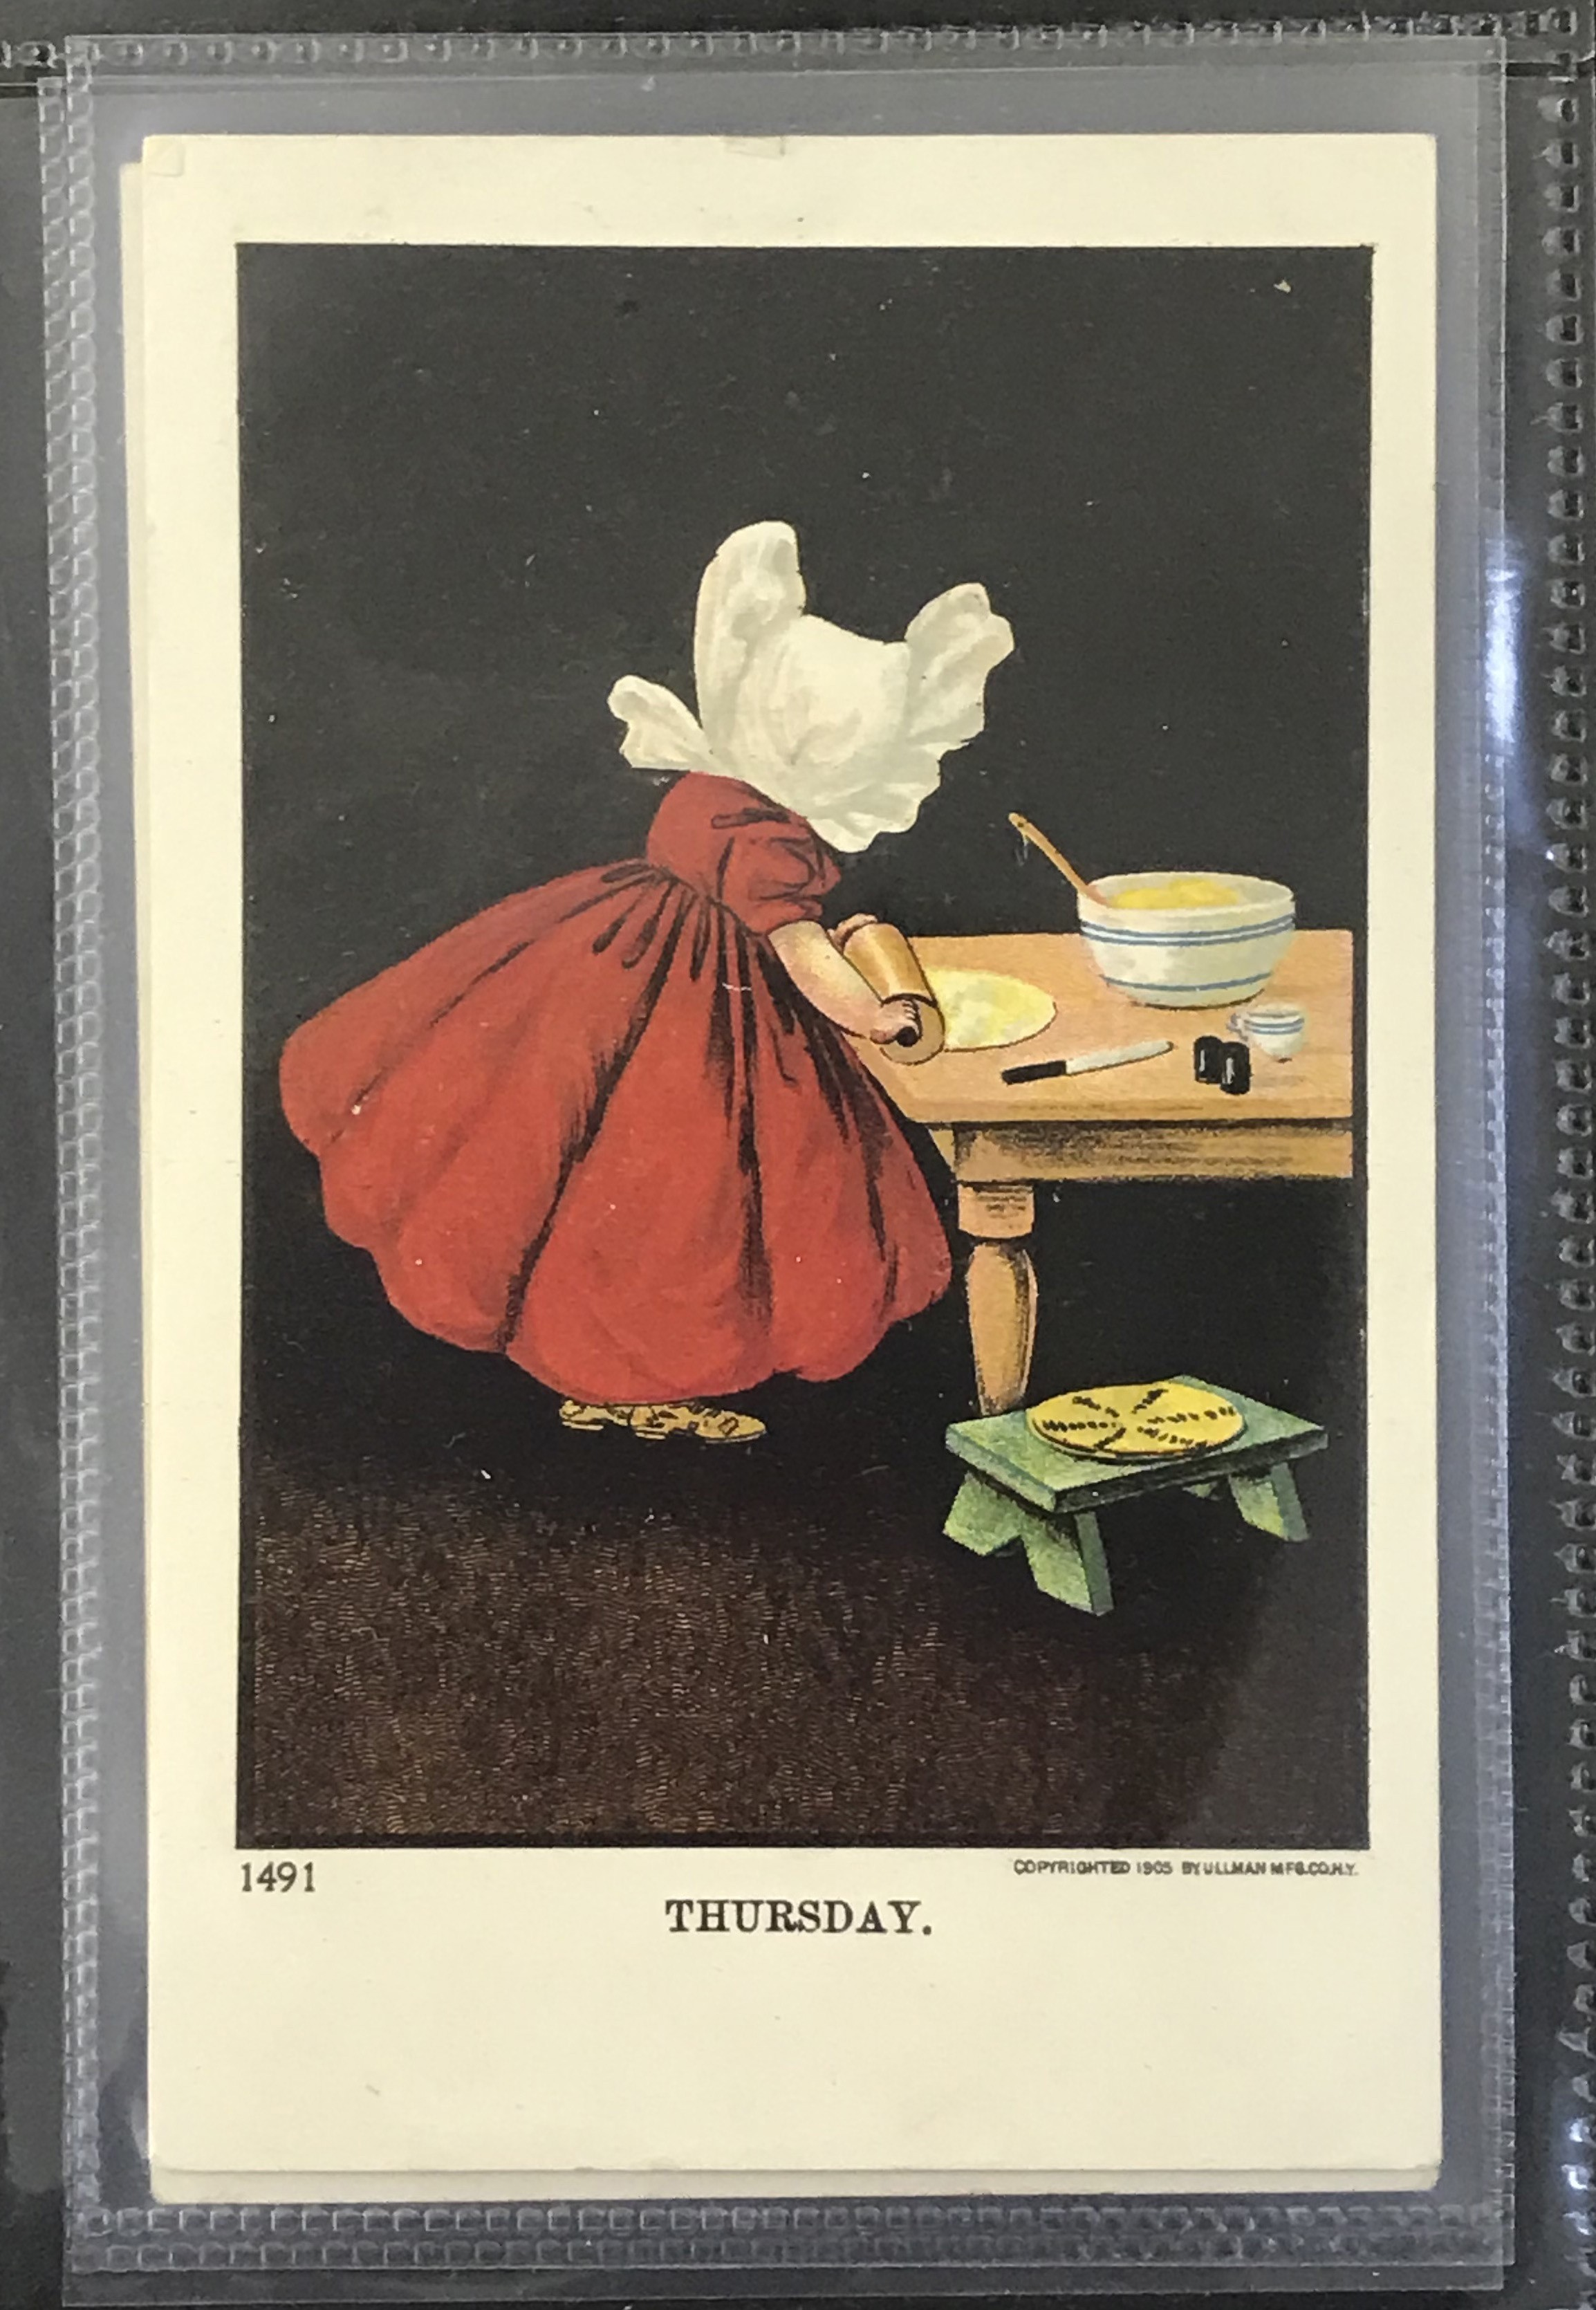 Ullman Manufacturing Co. Postcards - Complete set of Sunbonnet Baby Days - Image 7 of 11